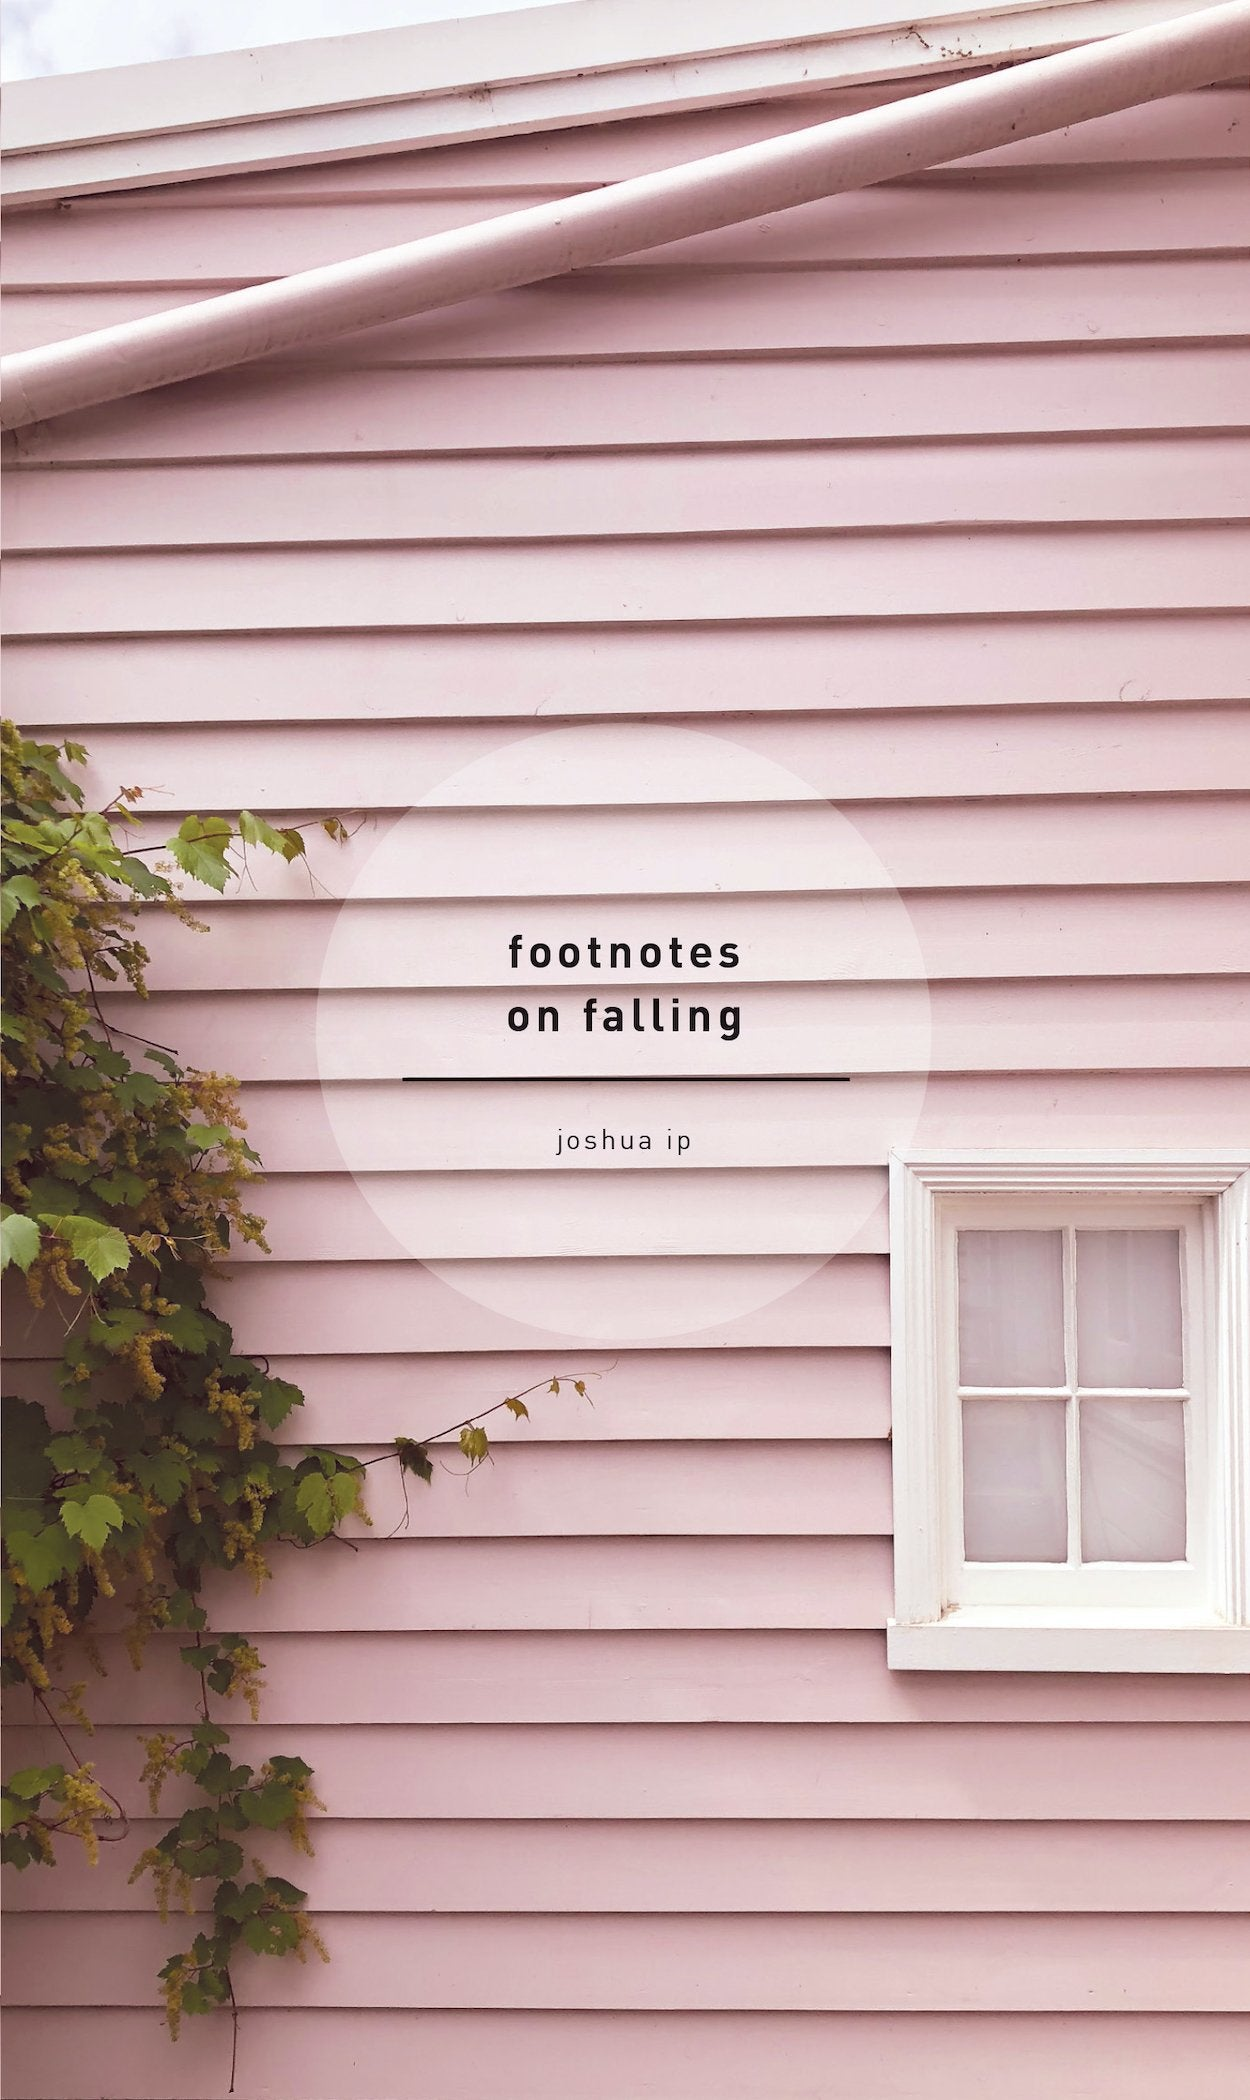 footnotes on falling